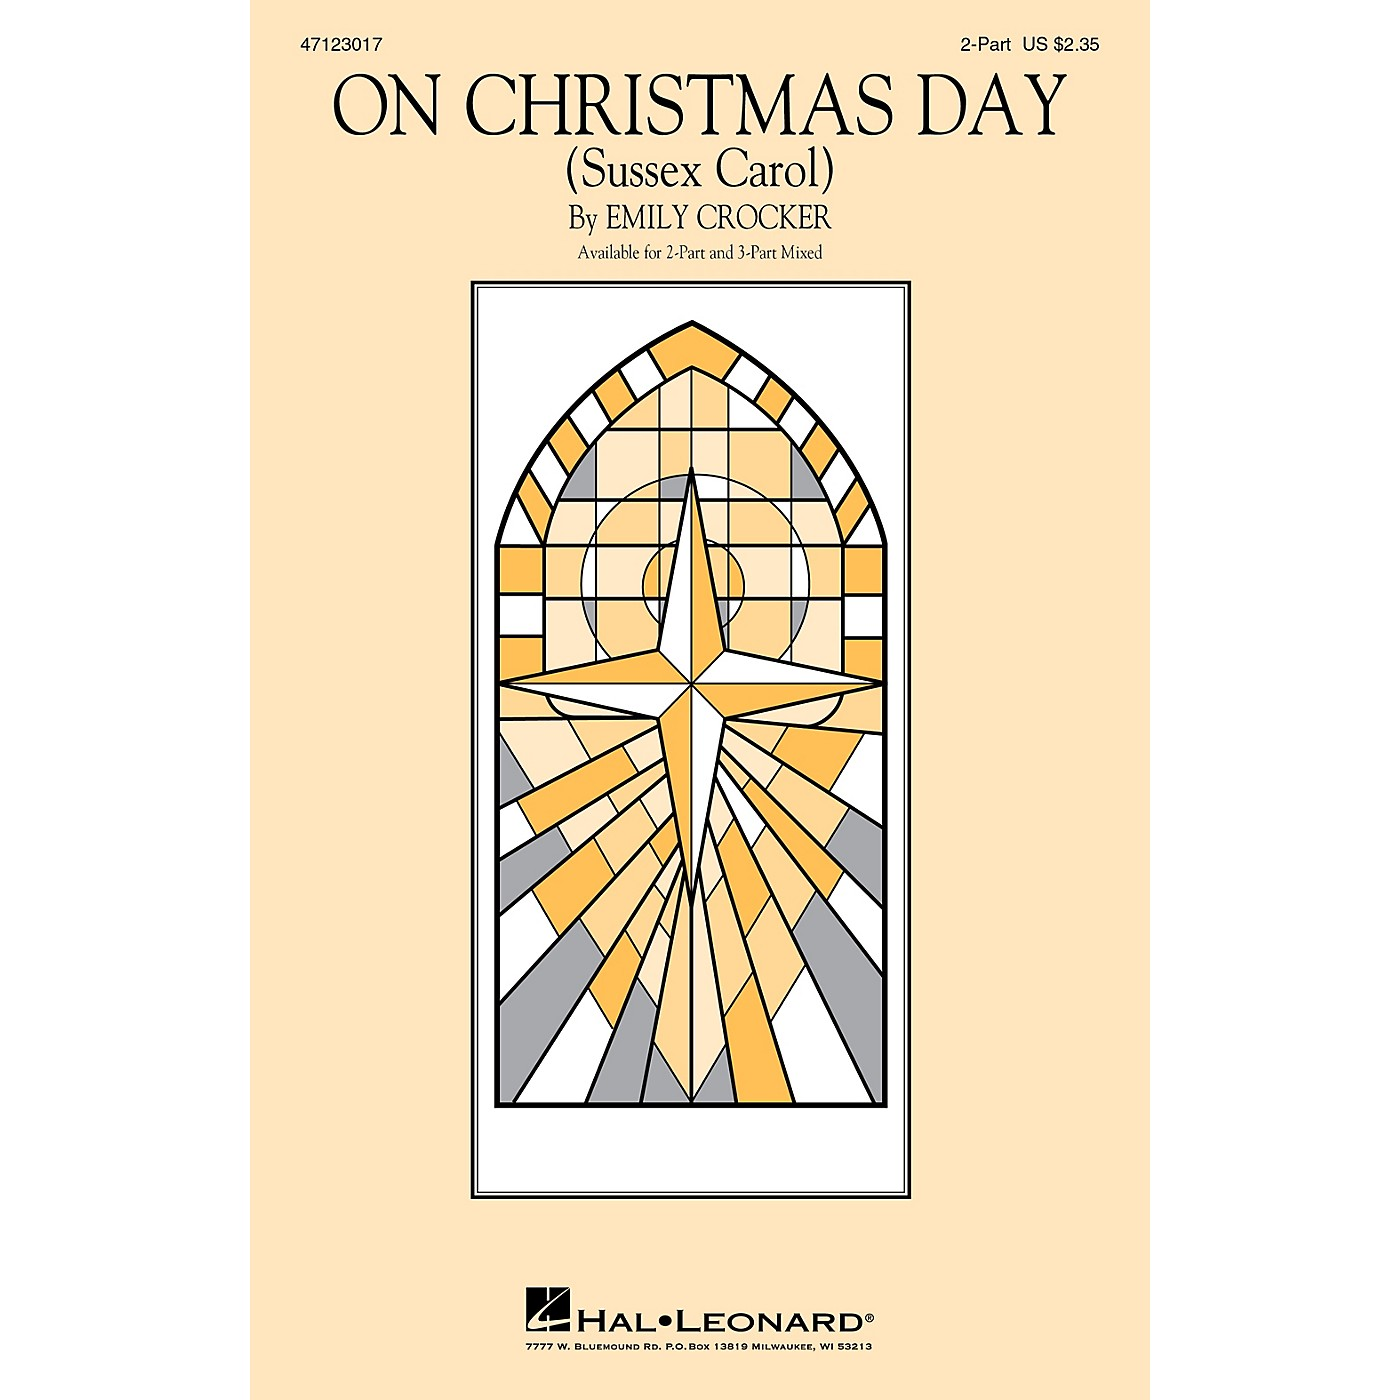 Hal Leonard On Christmas Day (Sussex Carol) 2-Part arranged by Emily Crocker thumbnail